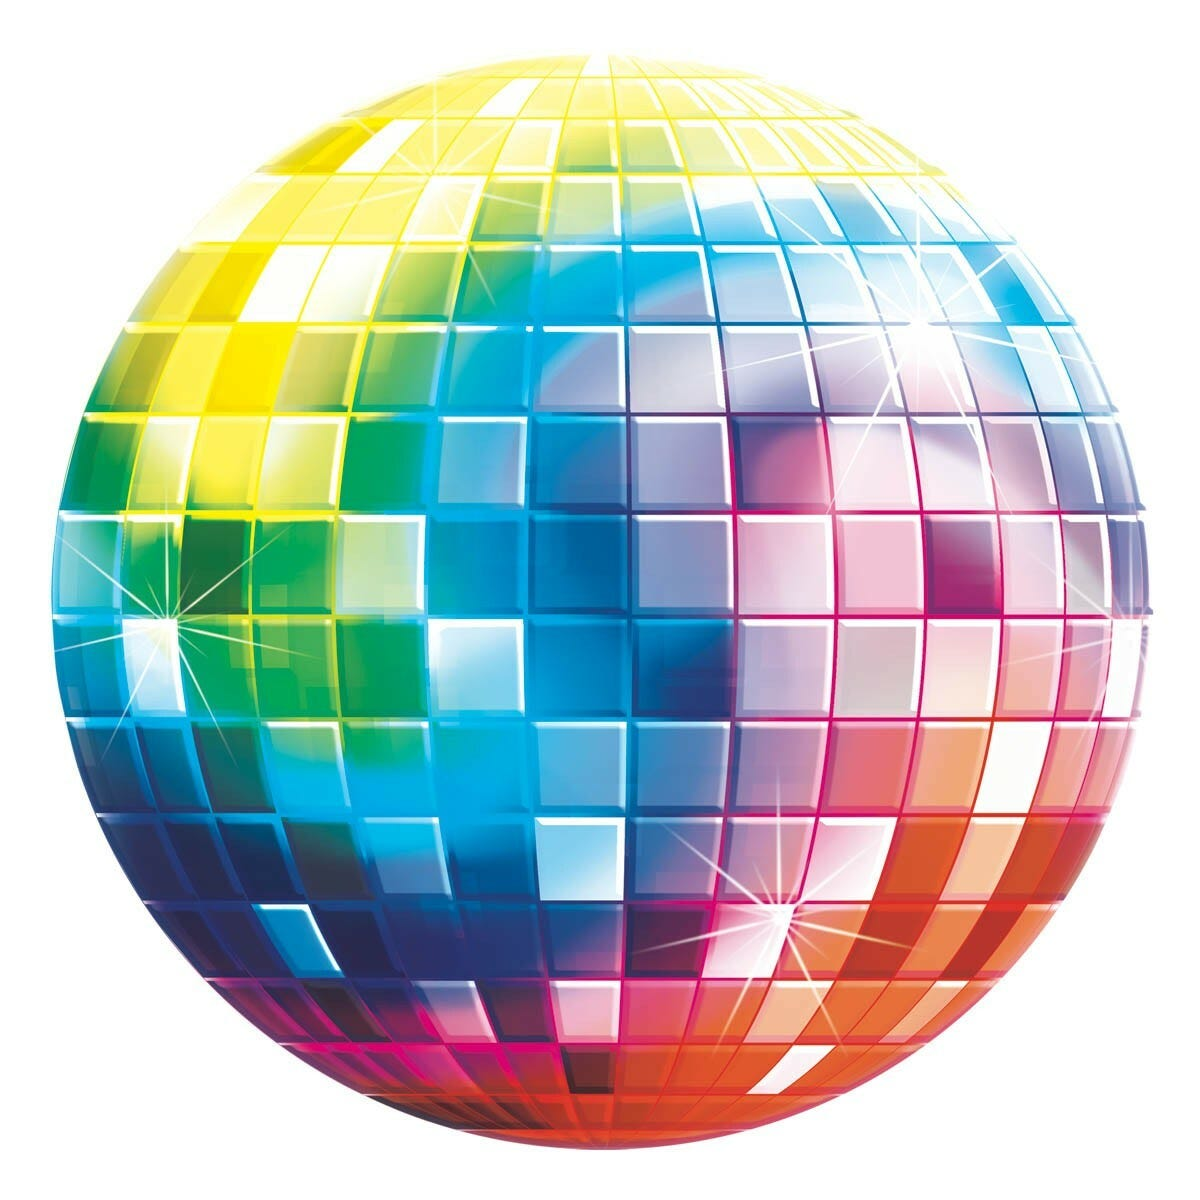 Disco Ball Party Decorations: DISCO BALL 70'S CARDBOARD CUTOUT PARTY ROOM WALL CEILING